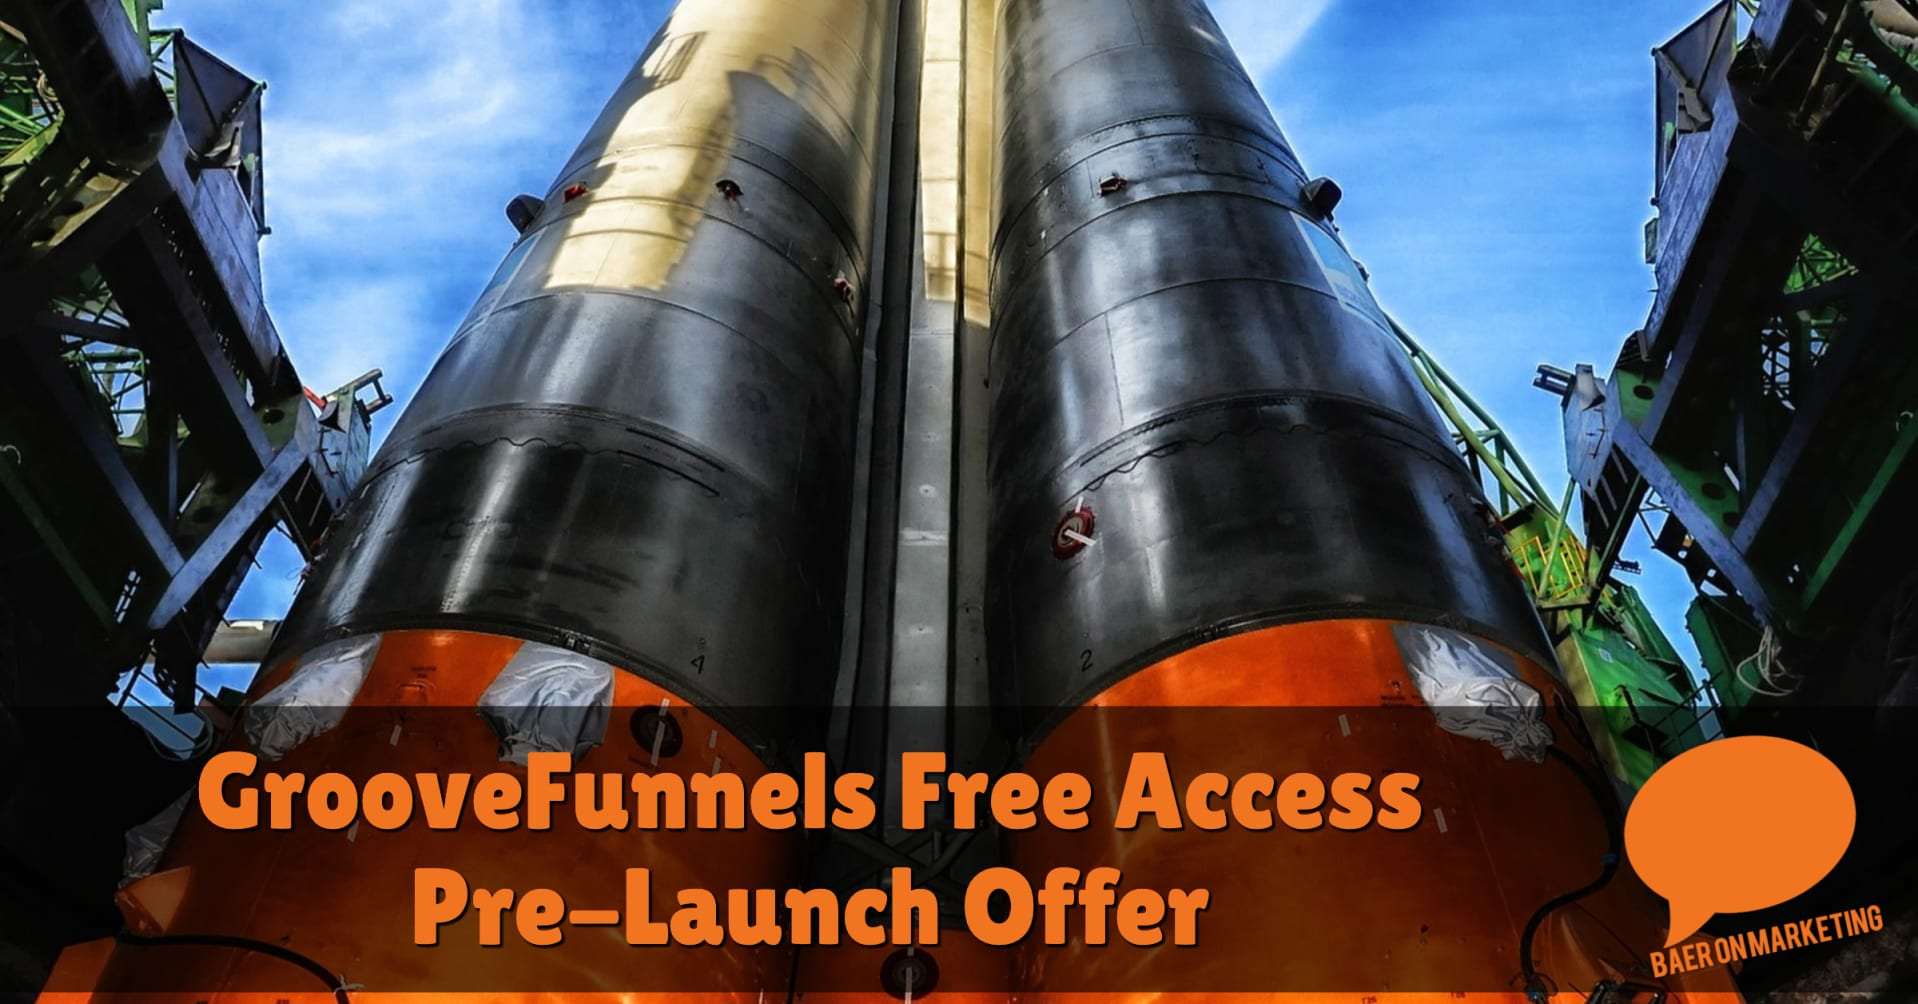 GrooveFunnels Free Access Pre-Launch Offer